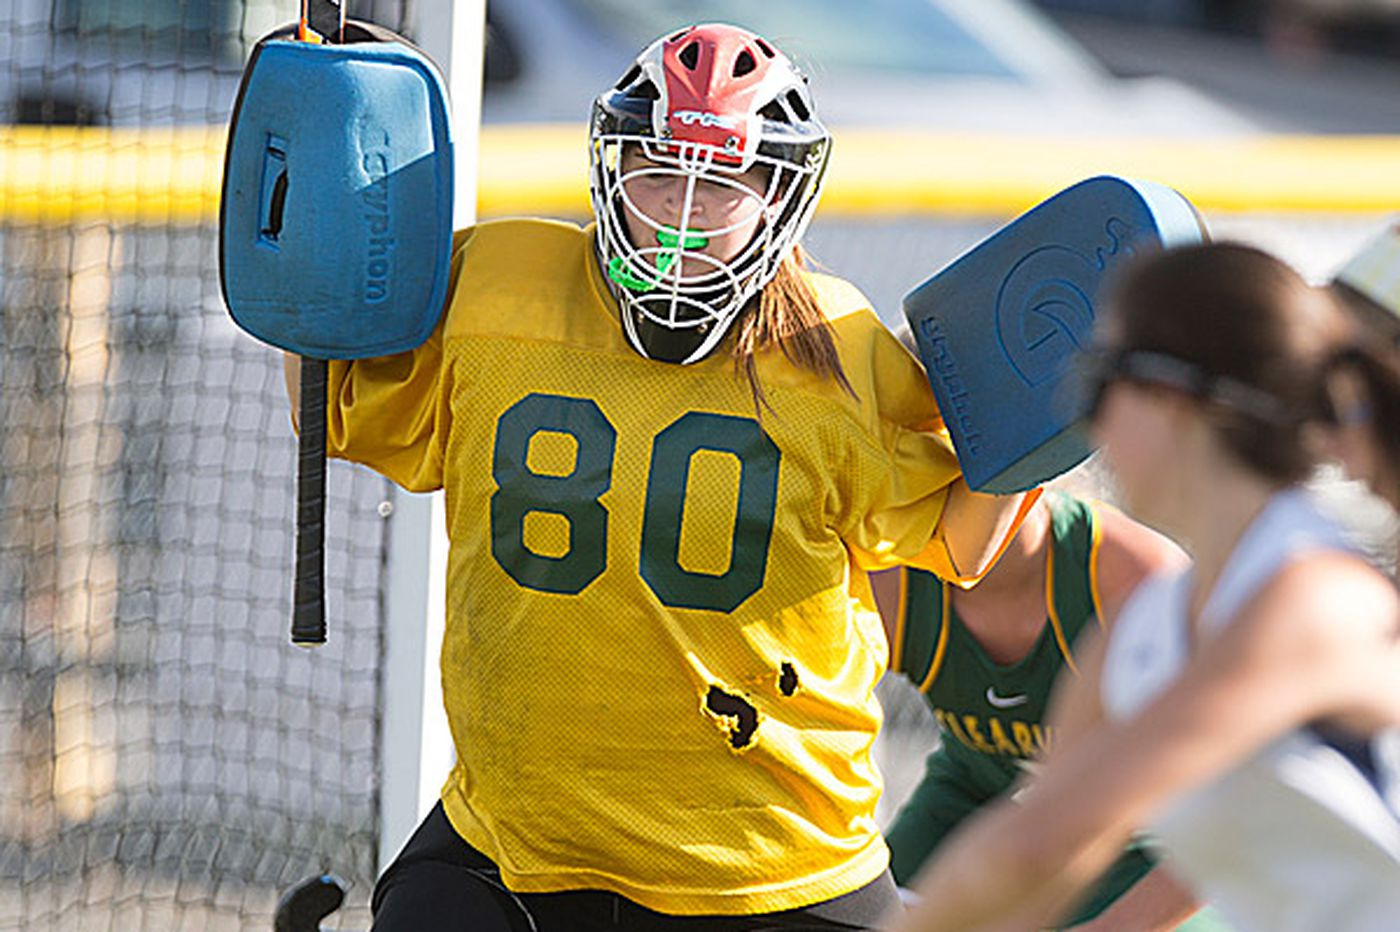 Clearview goalie goes from novice to standout